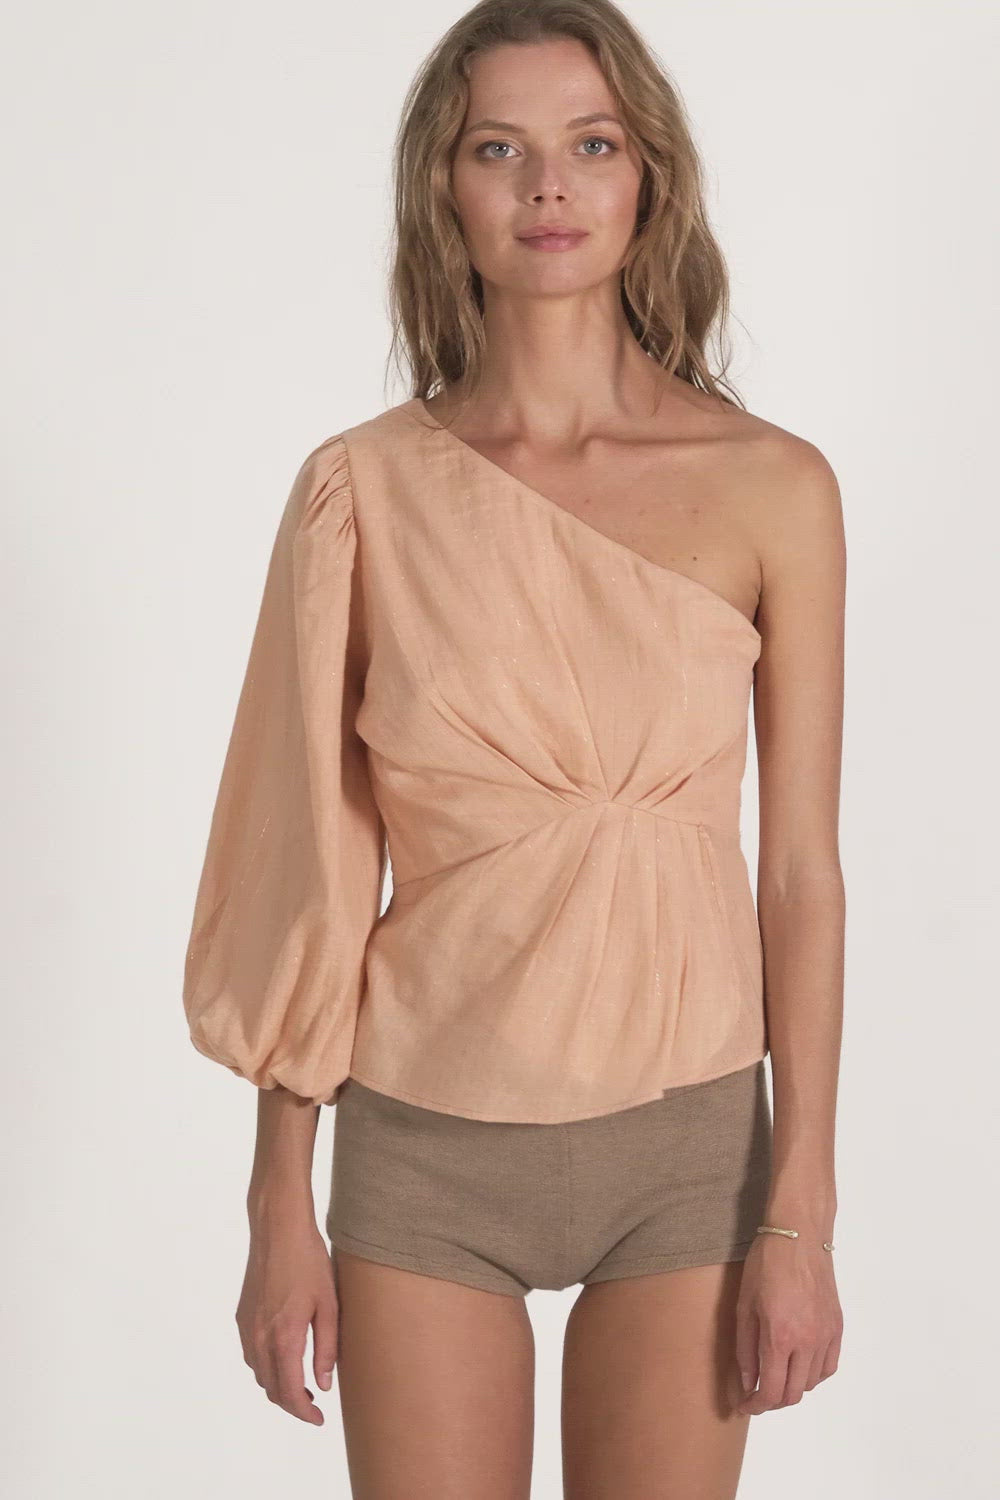 A woman in an elegant one shoulder top by Lilya in Australia